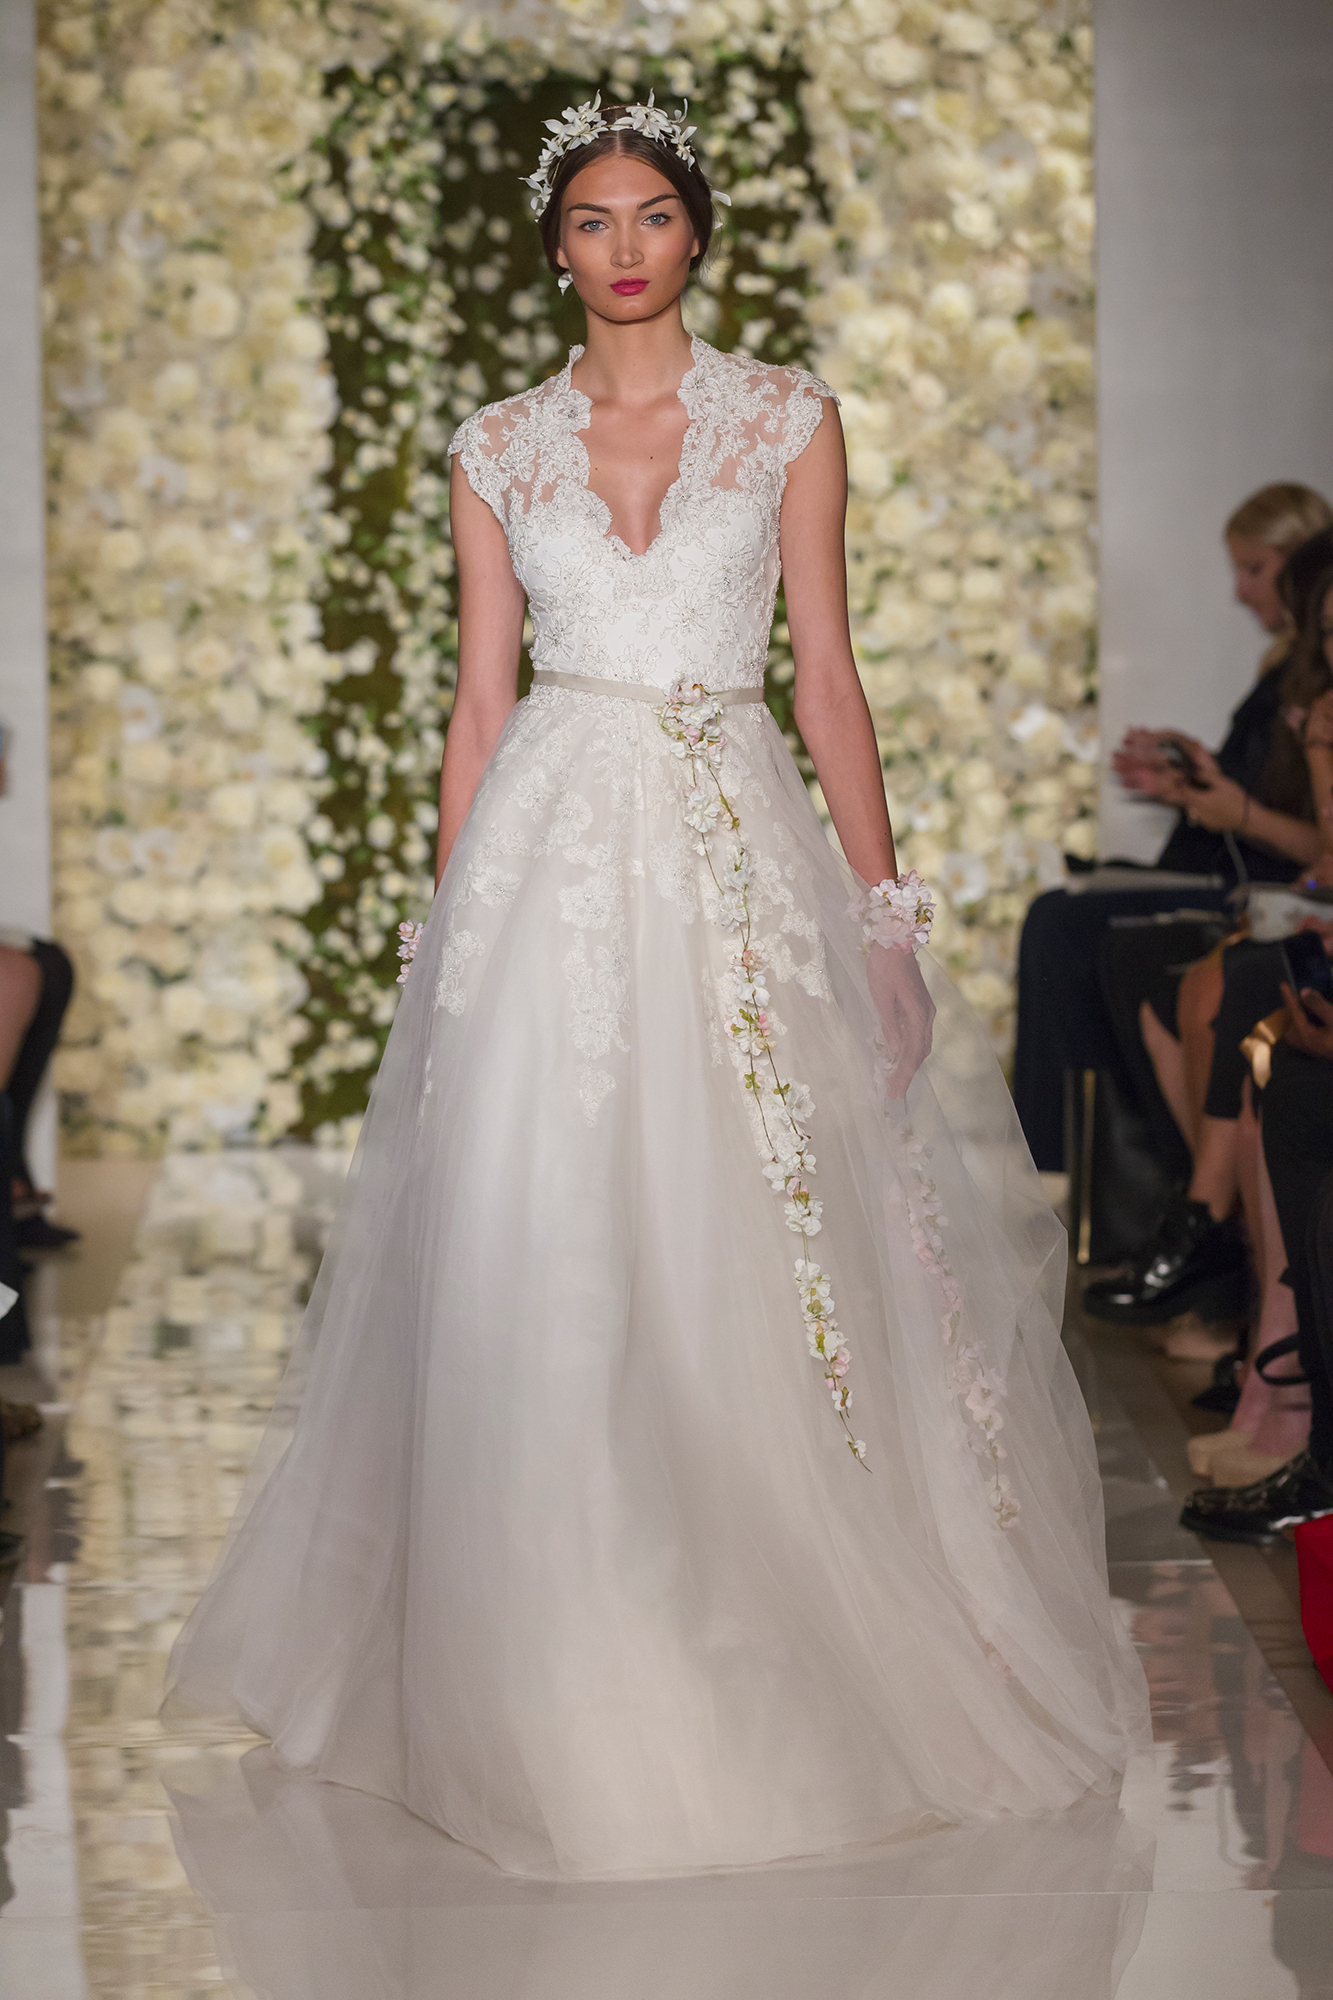 63d4b14d2078 The 25 Most-Pinned Wedding Dresses Of 2015 | HuffPost Life